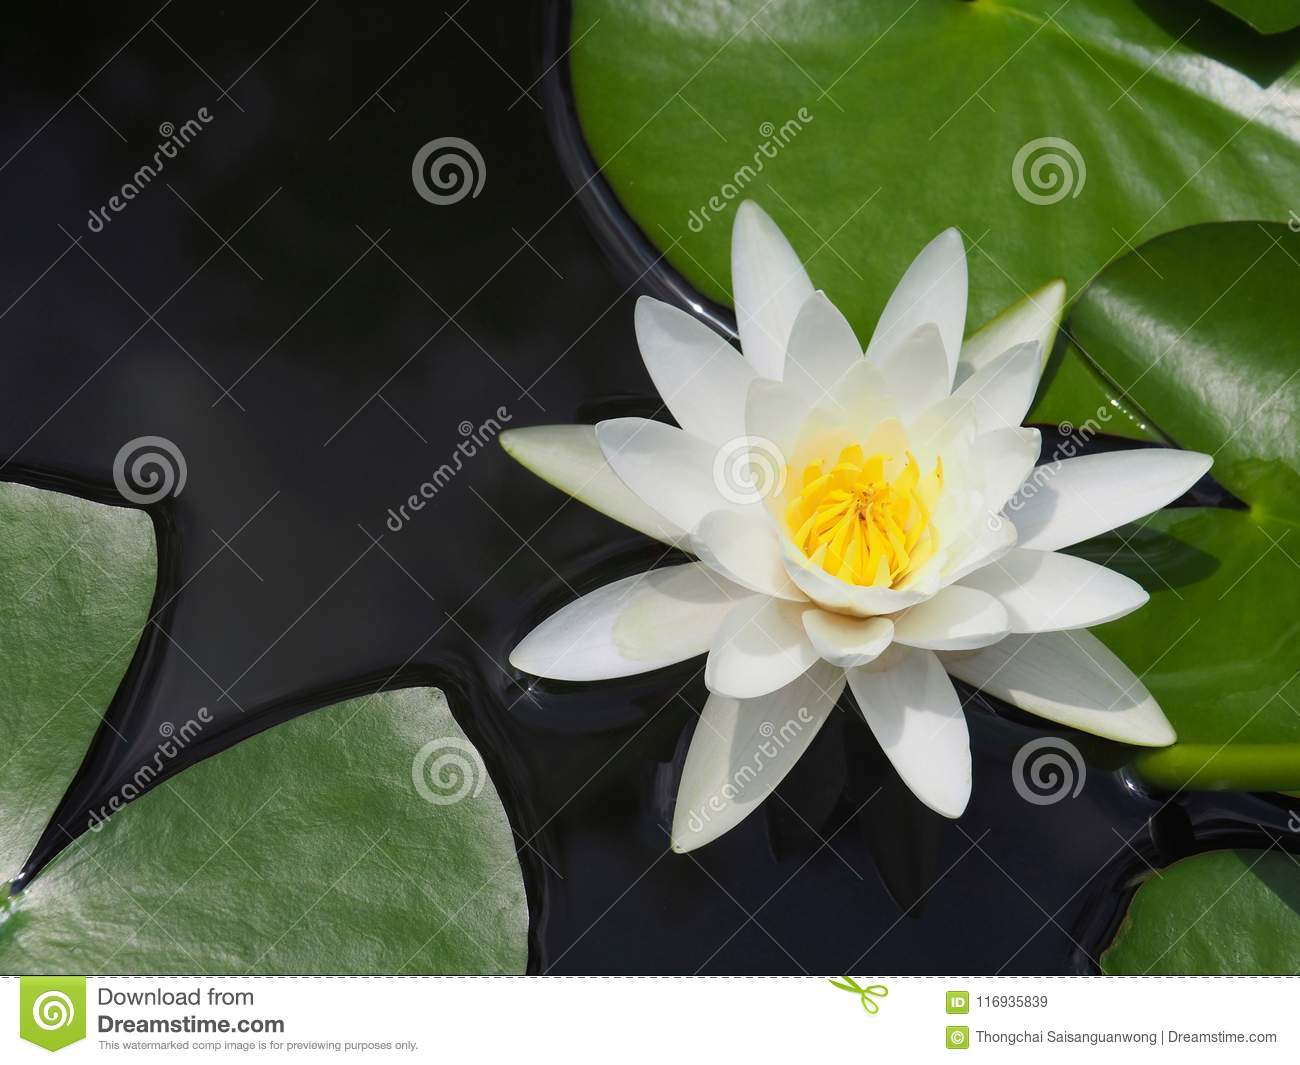 Lotus flower or water lily white with green leaves beautifully lotus flower or water lily white with green leaves beautifully blooming in the spa pool to decorate it is the flower of the month july is also related to izmirmasajfo